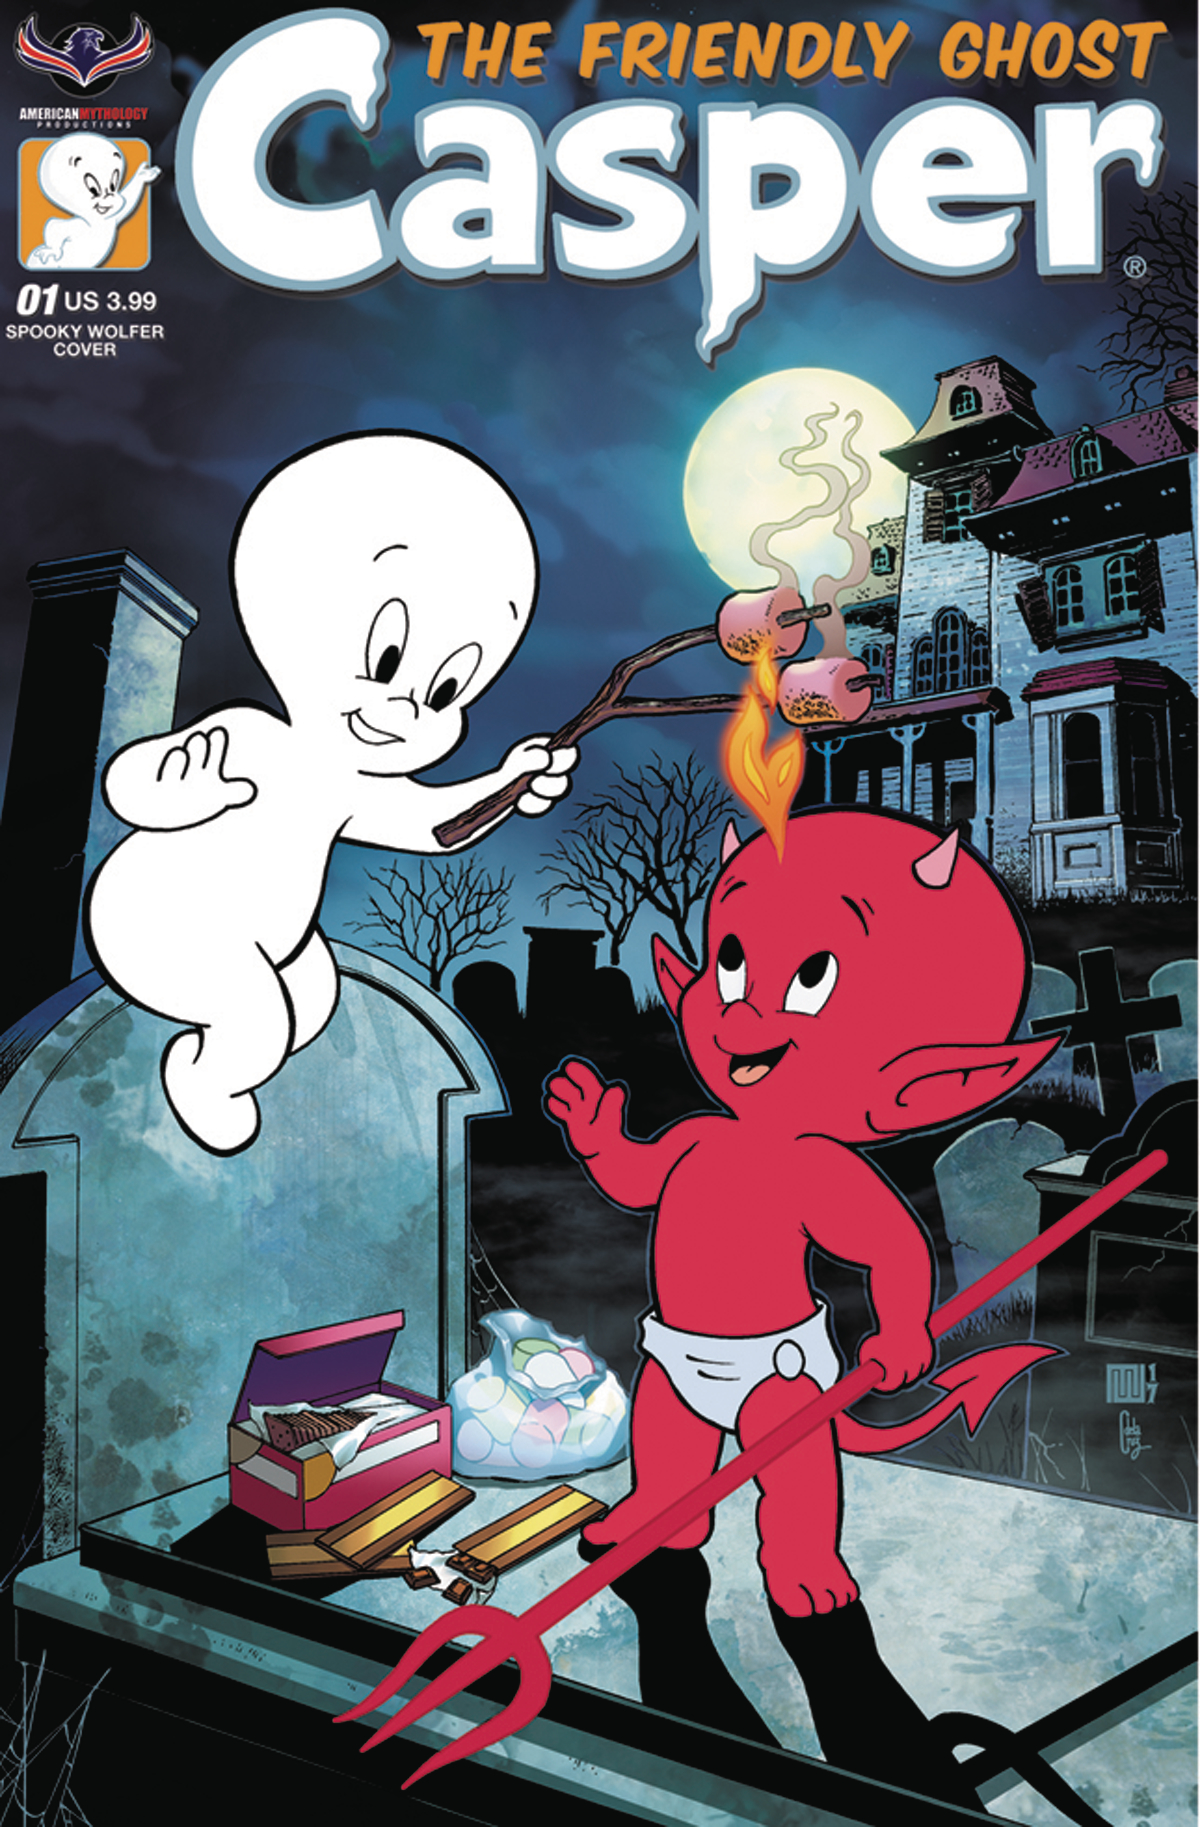 CASPER THE FRIENDLY GHOST #1 SPOOKY WOLFER CVR